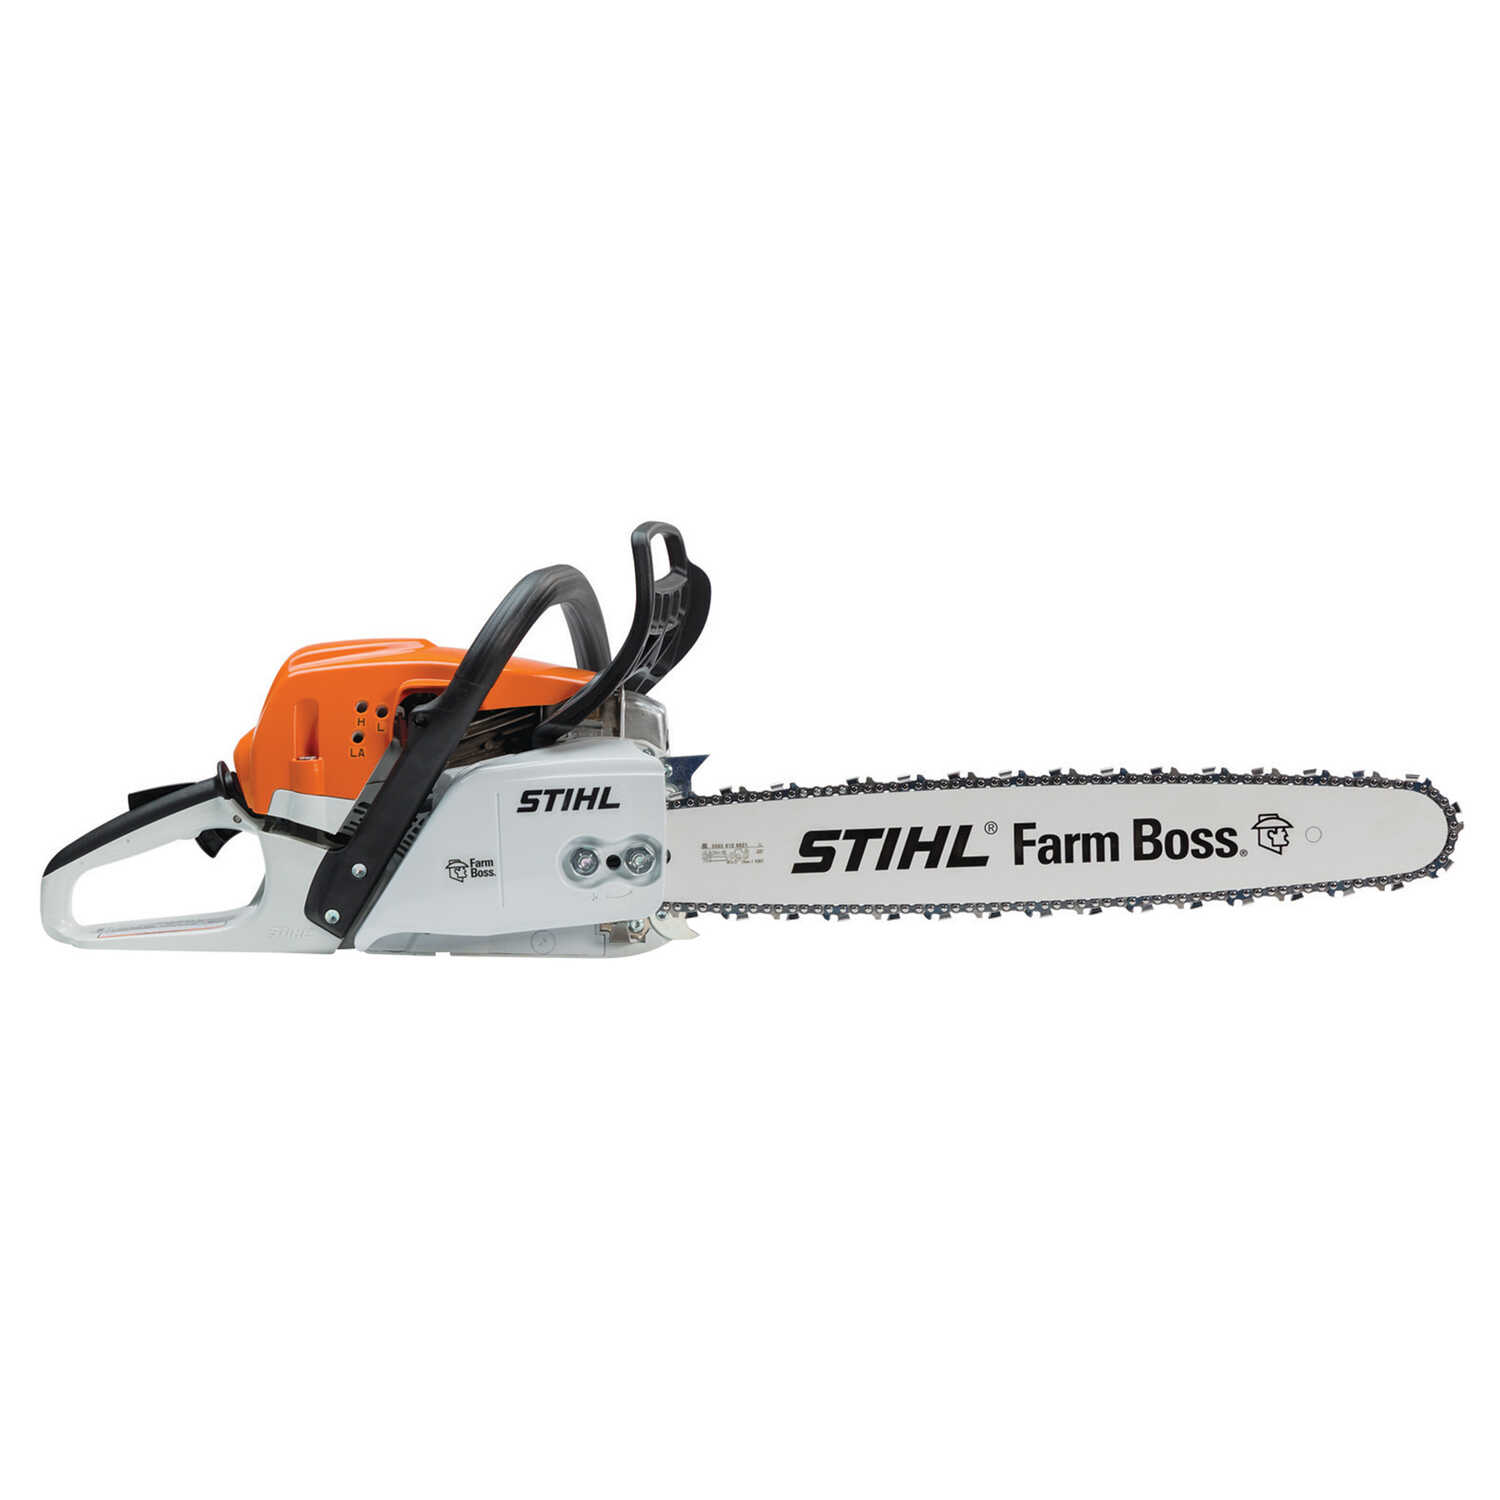 STIHL 20 in  Gas Chainsaw MS 271 Farm Boss - Ace Hardware